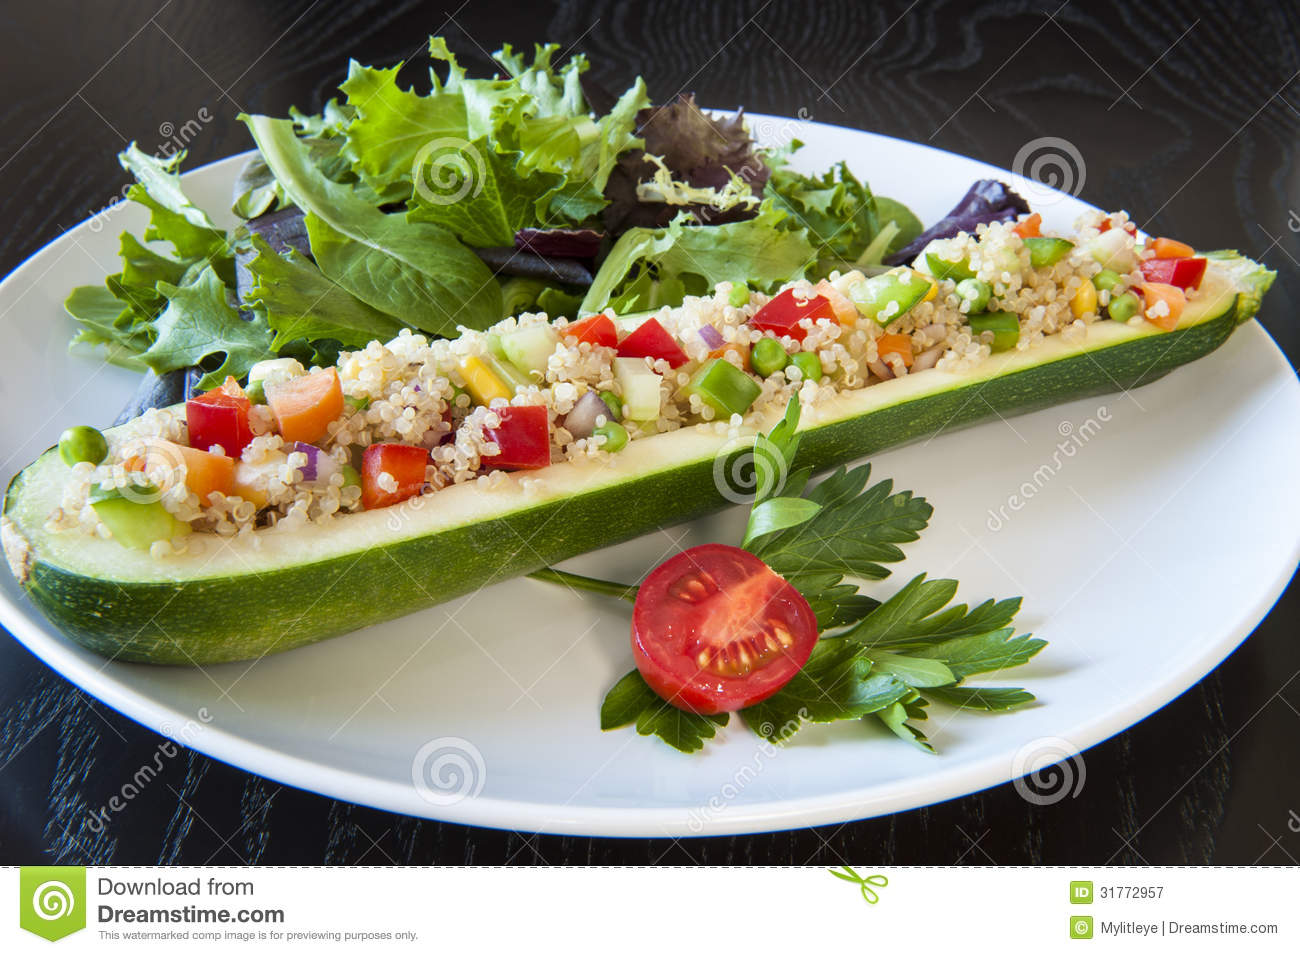 Zucchini stuffed with quinoa and vegetables on a white plate.